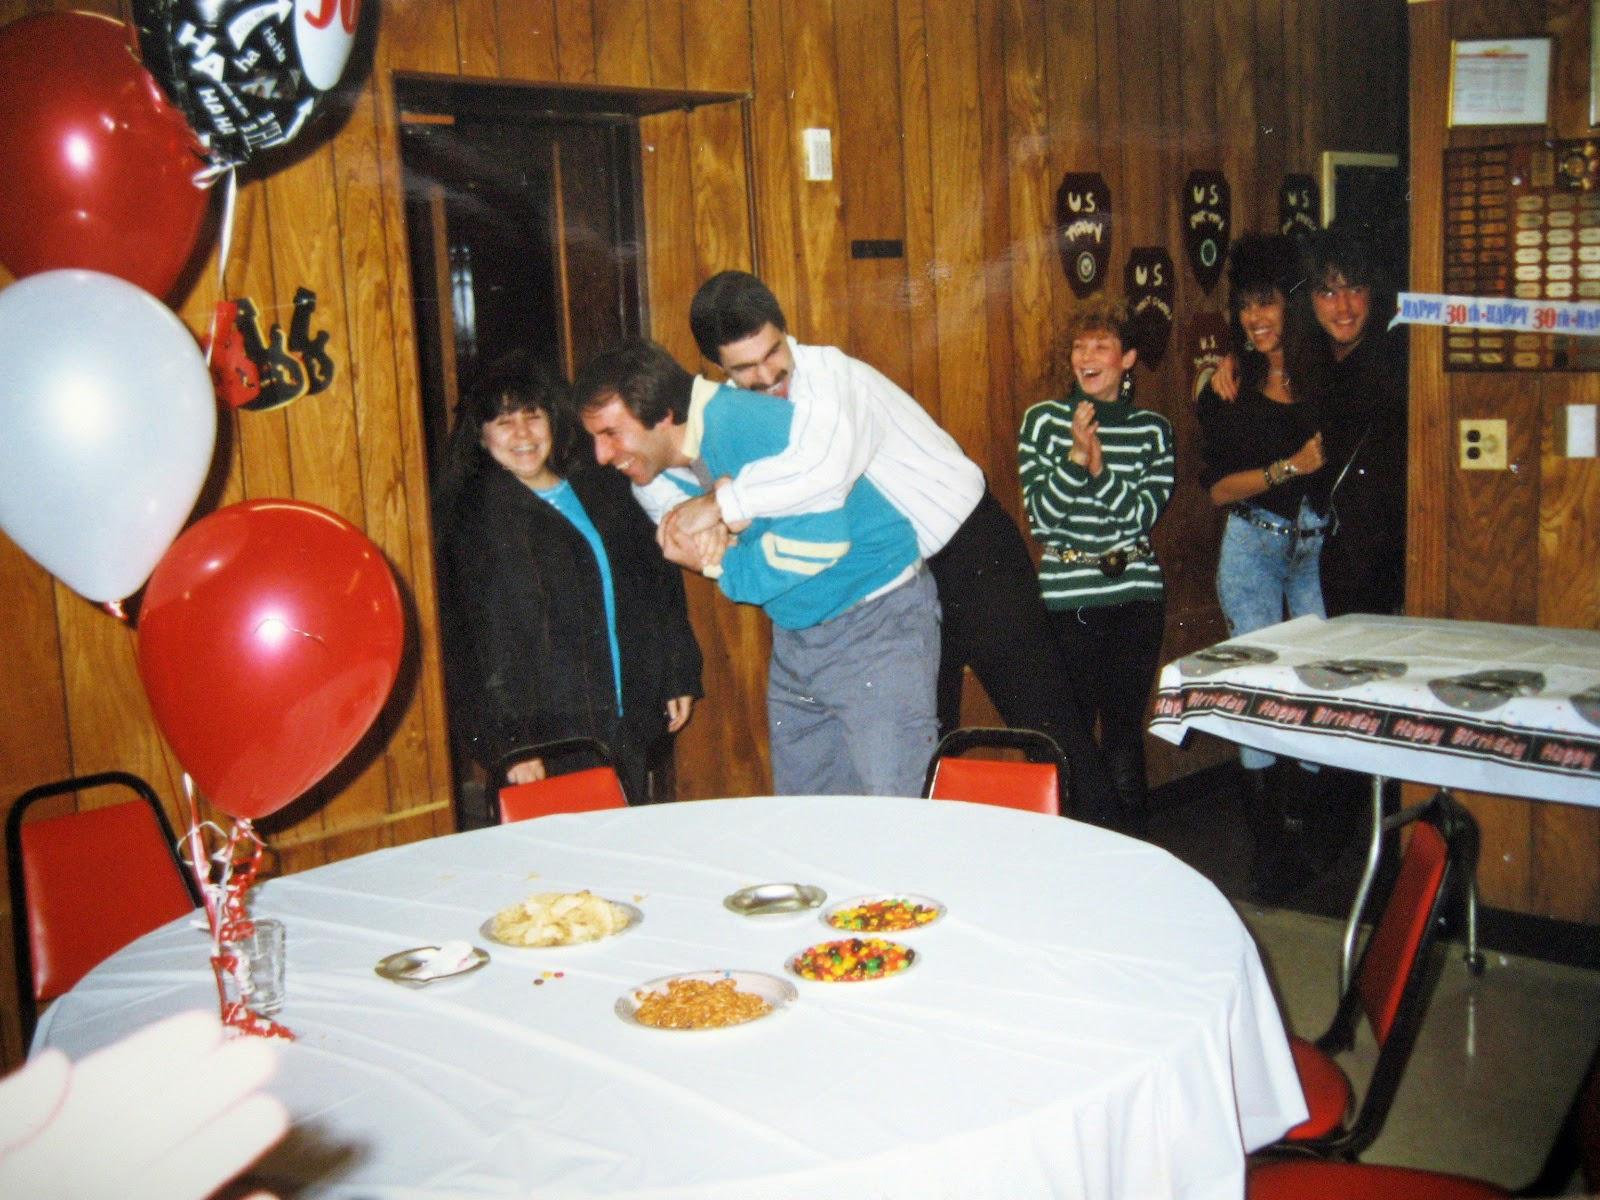 Tommy Mondello's 30th surprise party January 19, 1991